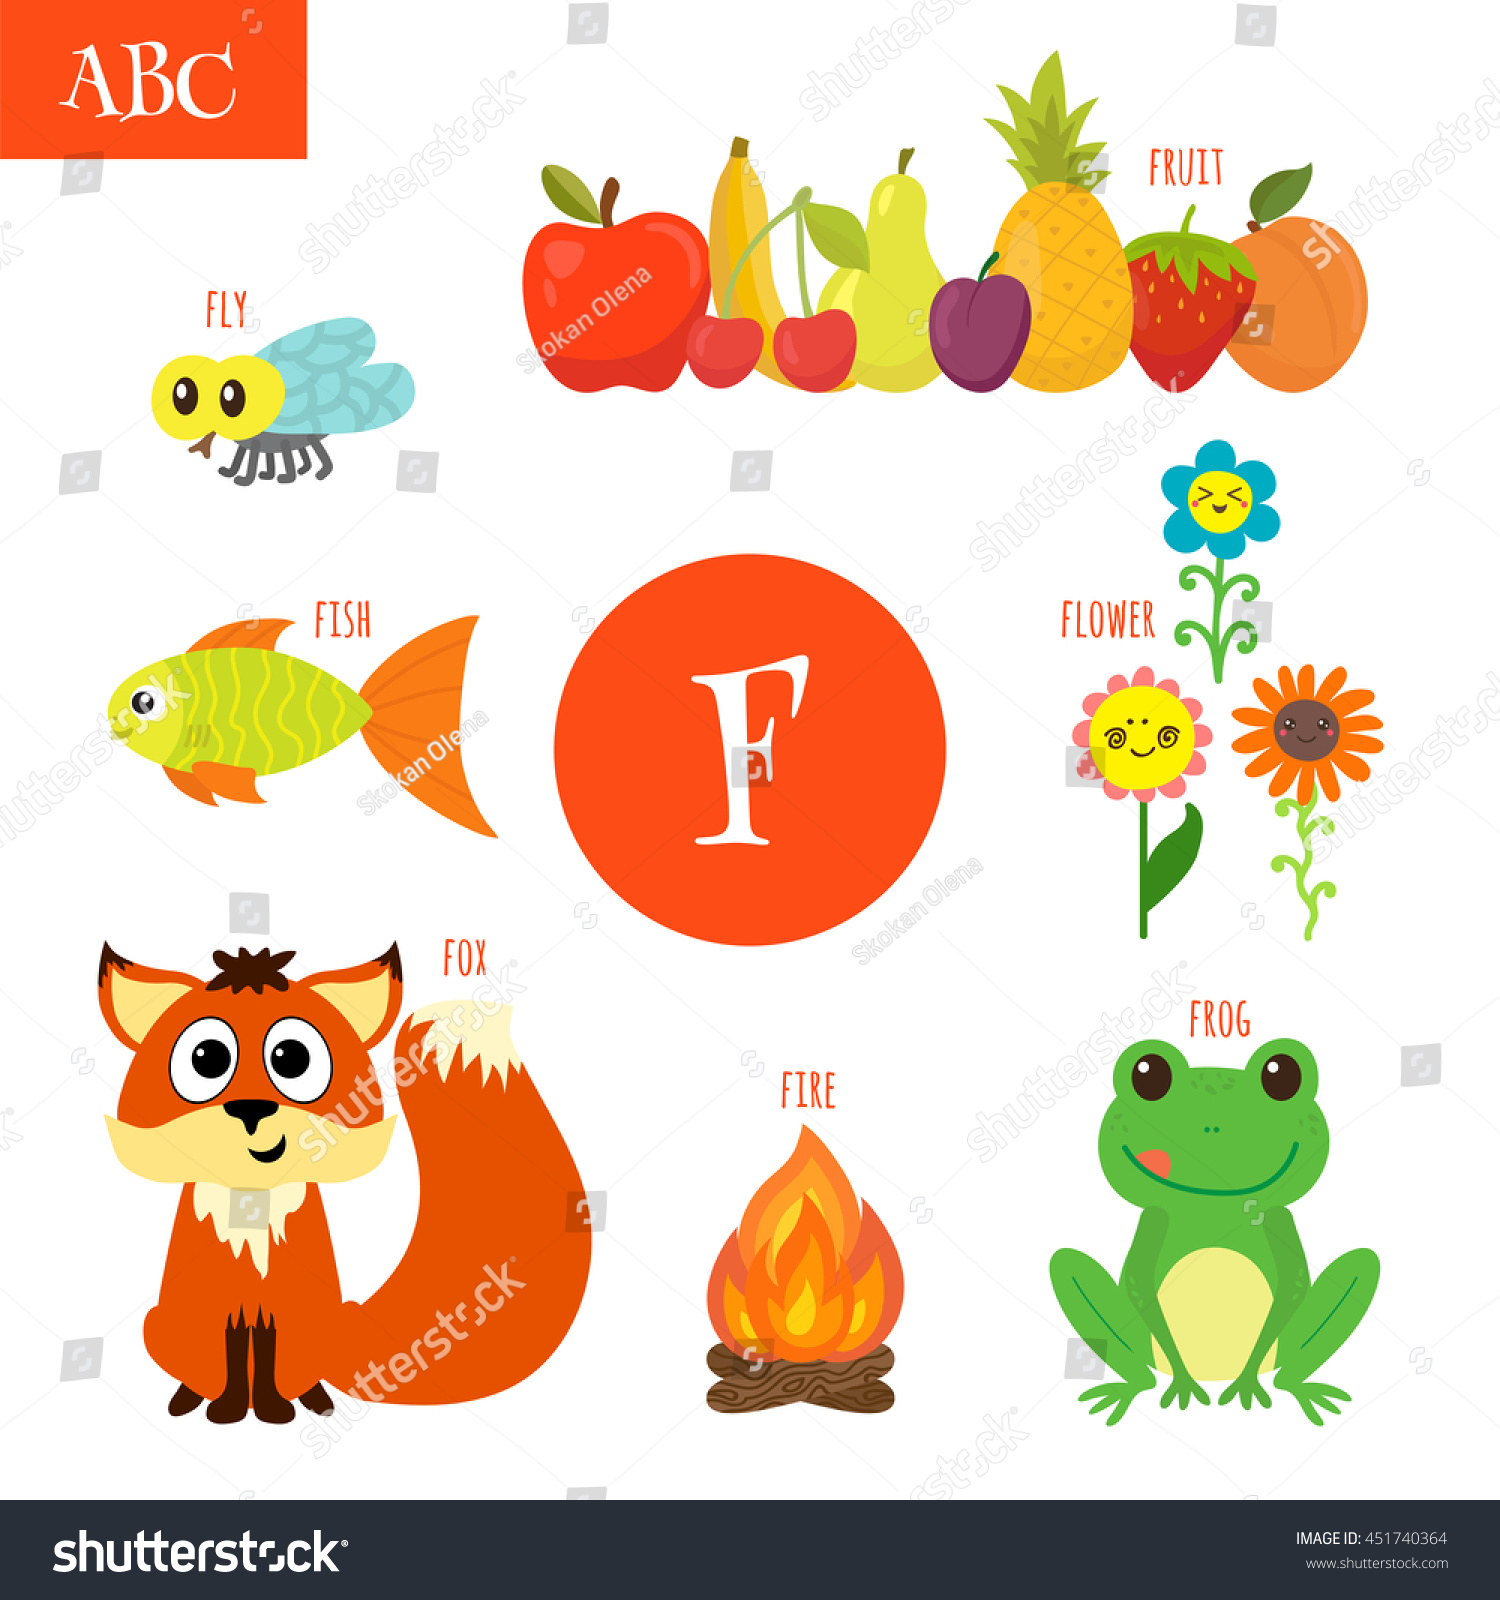 Letter F Cartoon Alphabet Children Flower Stock Vector